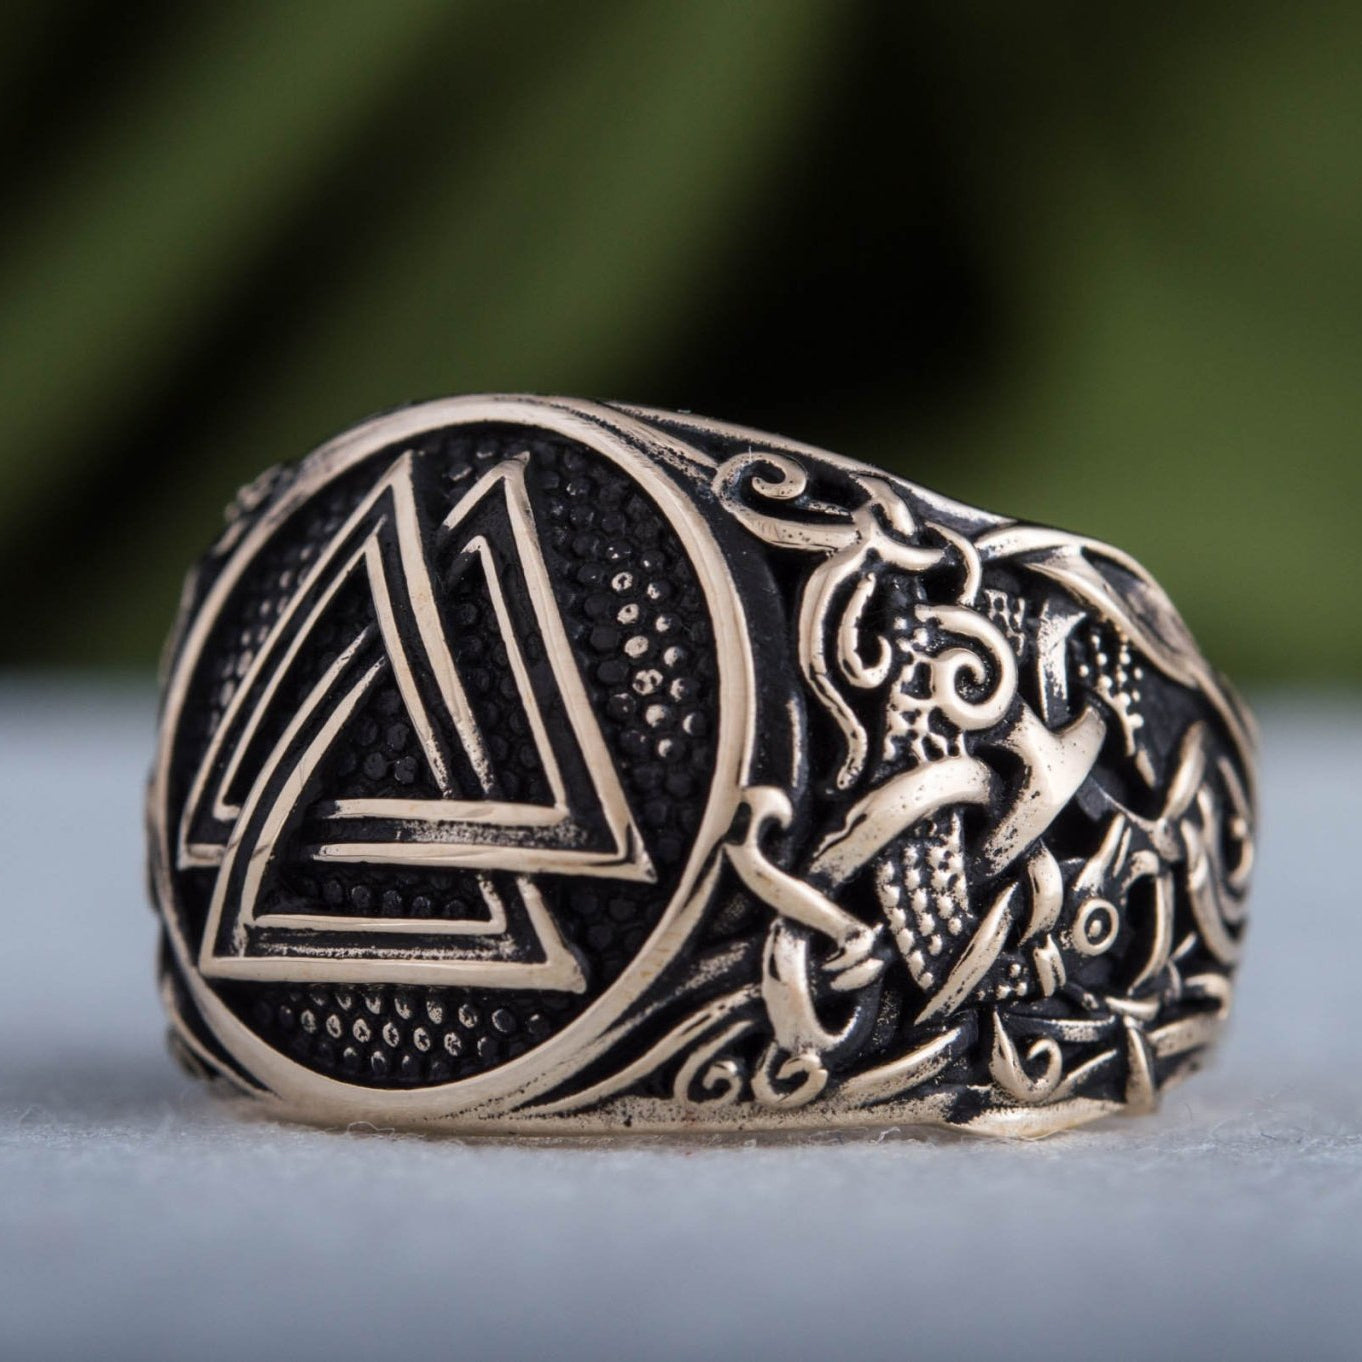 Valknut Ring with Mammen Ornament Handcrafted Bronze Viking Ring